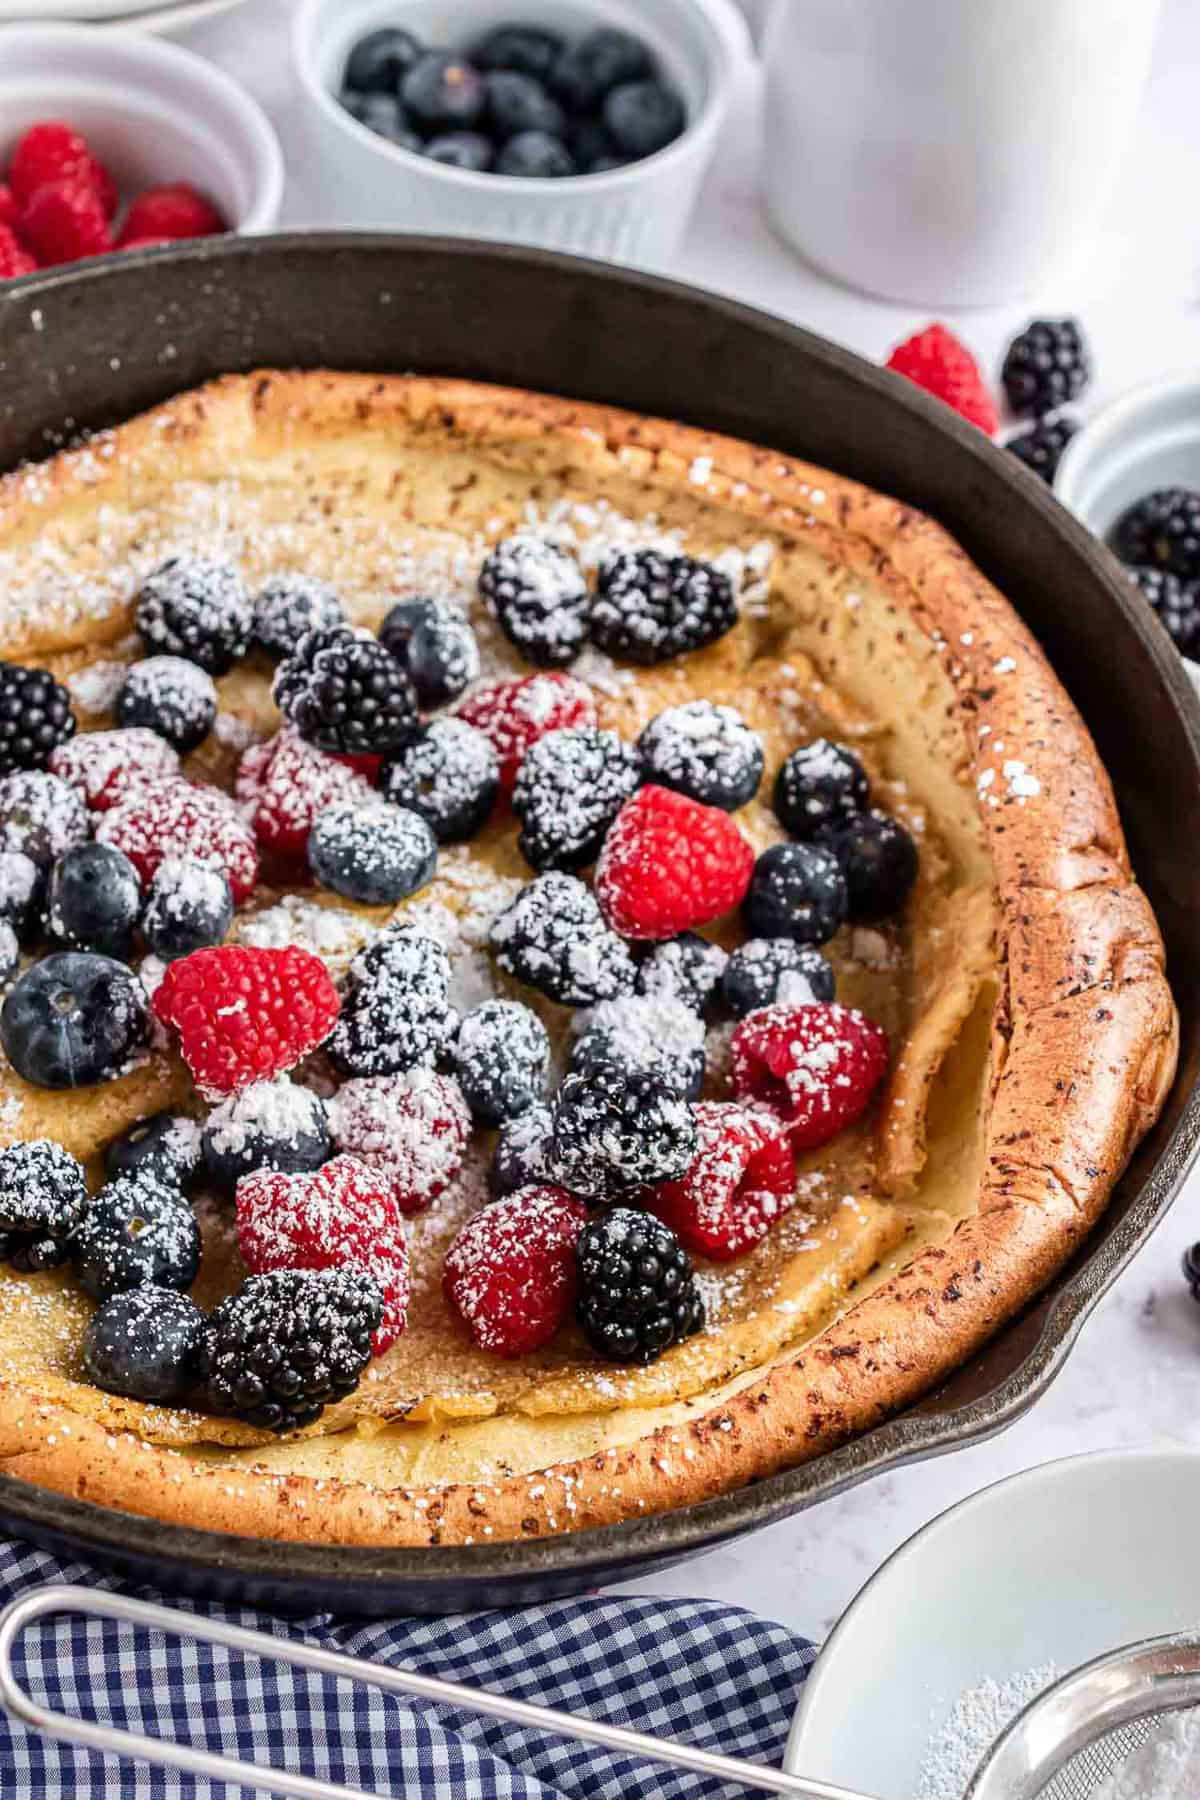 Skillet pancake with toppings.